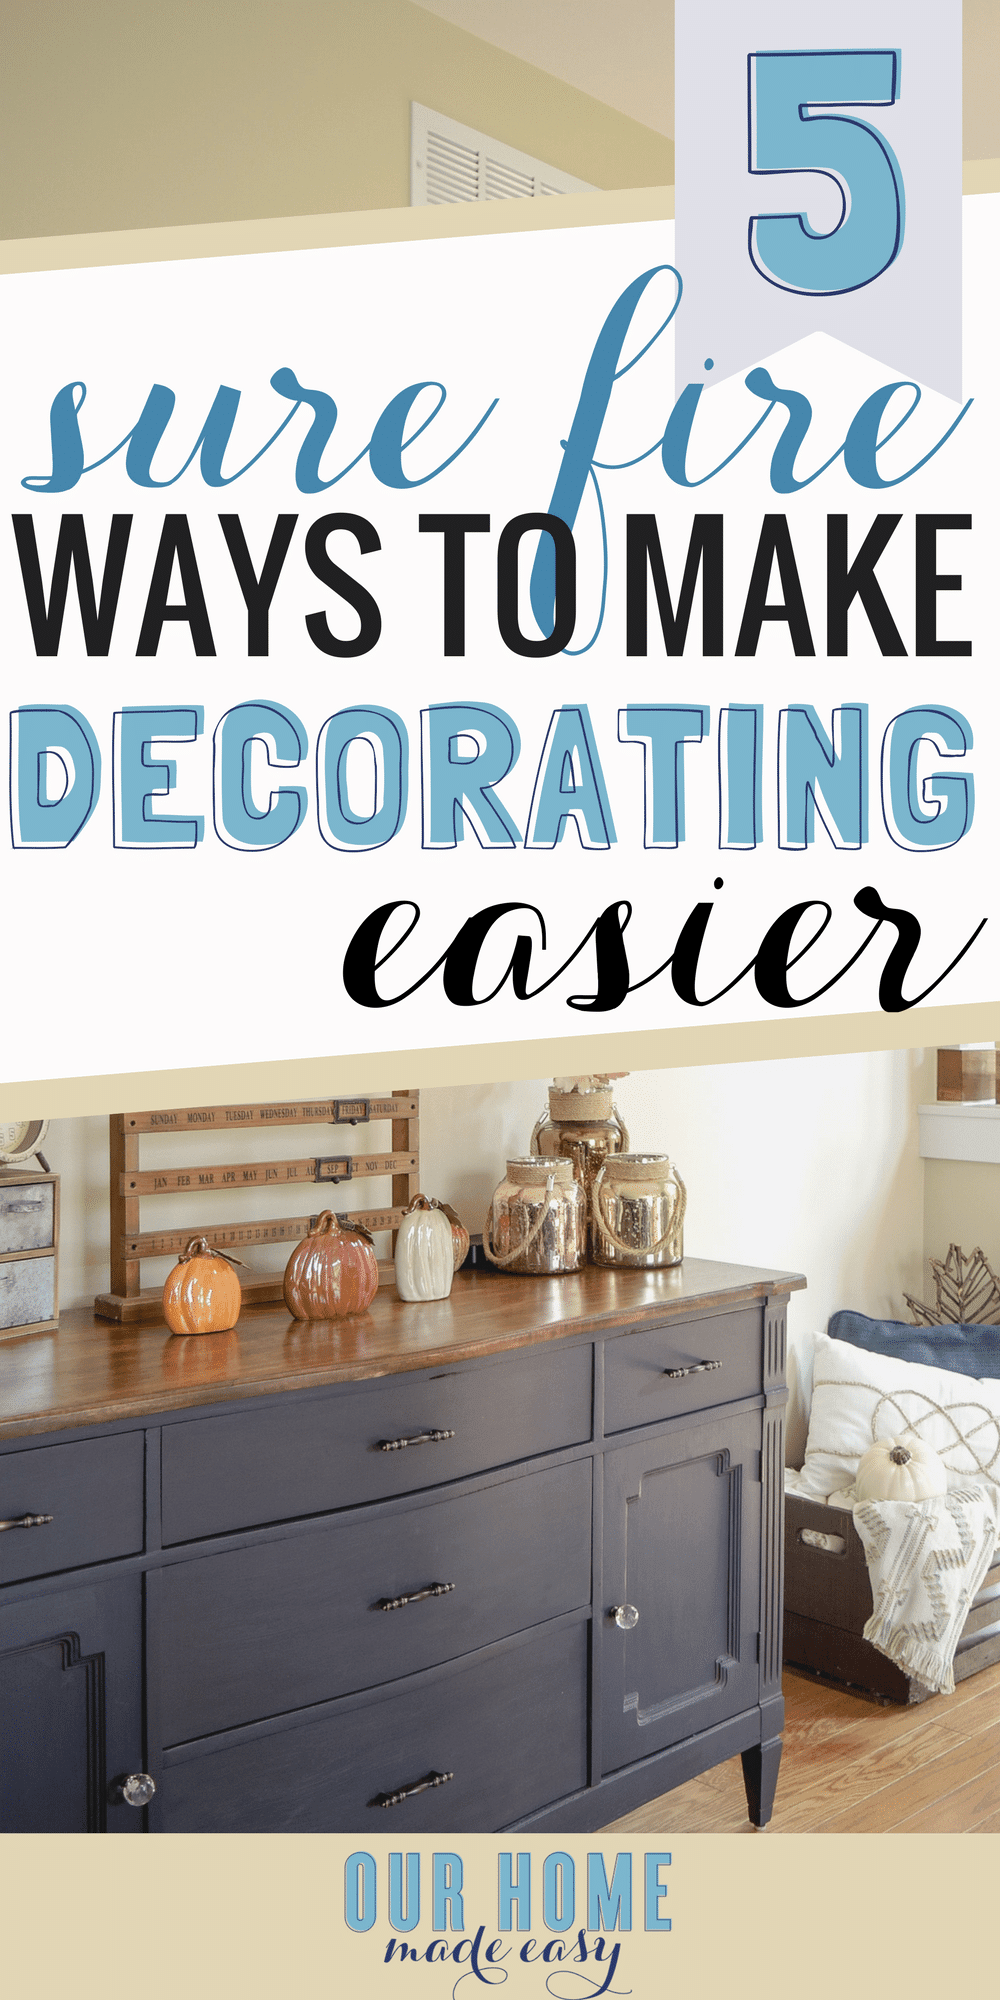 Decorating your home is pretty easy! You can DIY a beautiful home decor without breaking the budget. Here are 5 ways to decorate your home effortlessly!